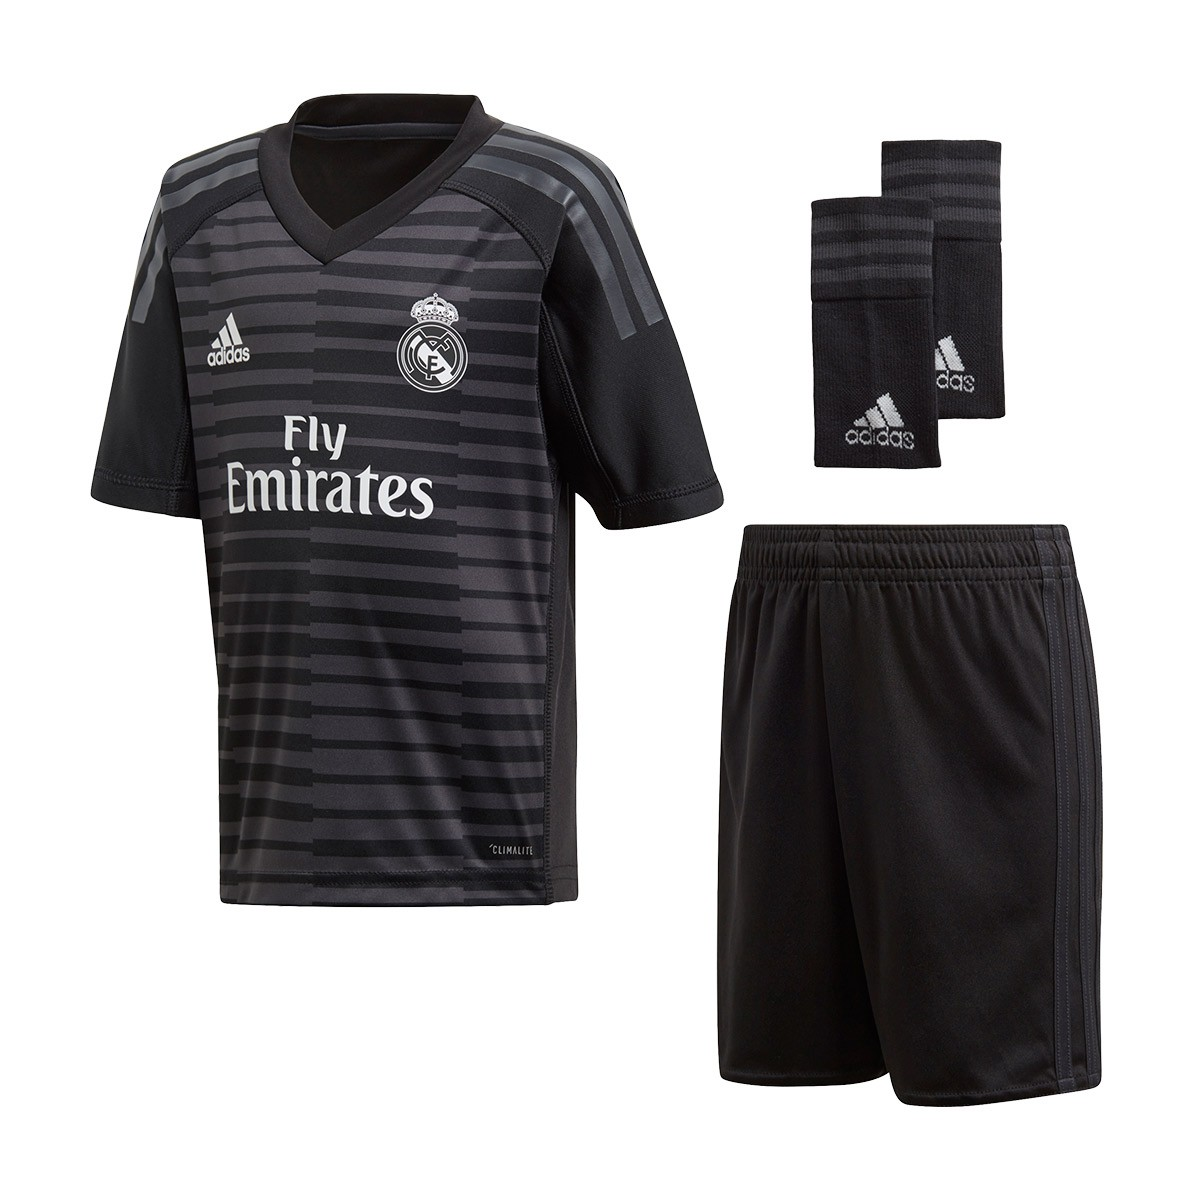 reputable site 4f920 5dccb Kit adidas Kids Goalkeeper Real Madrid 2018-2019 Home Black ...